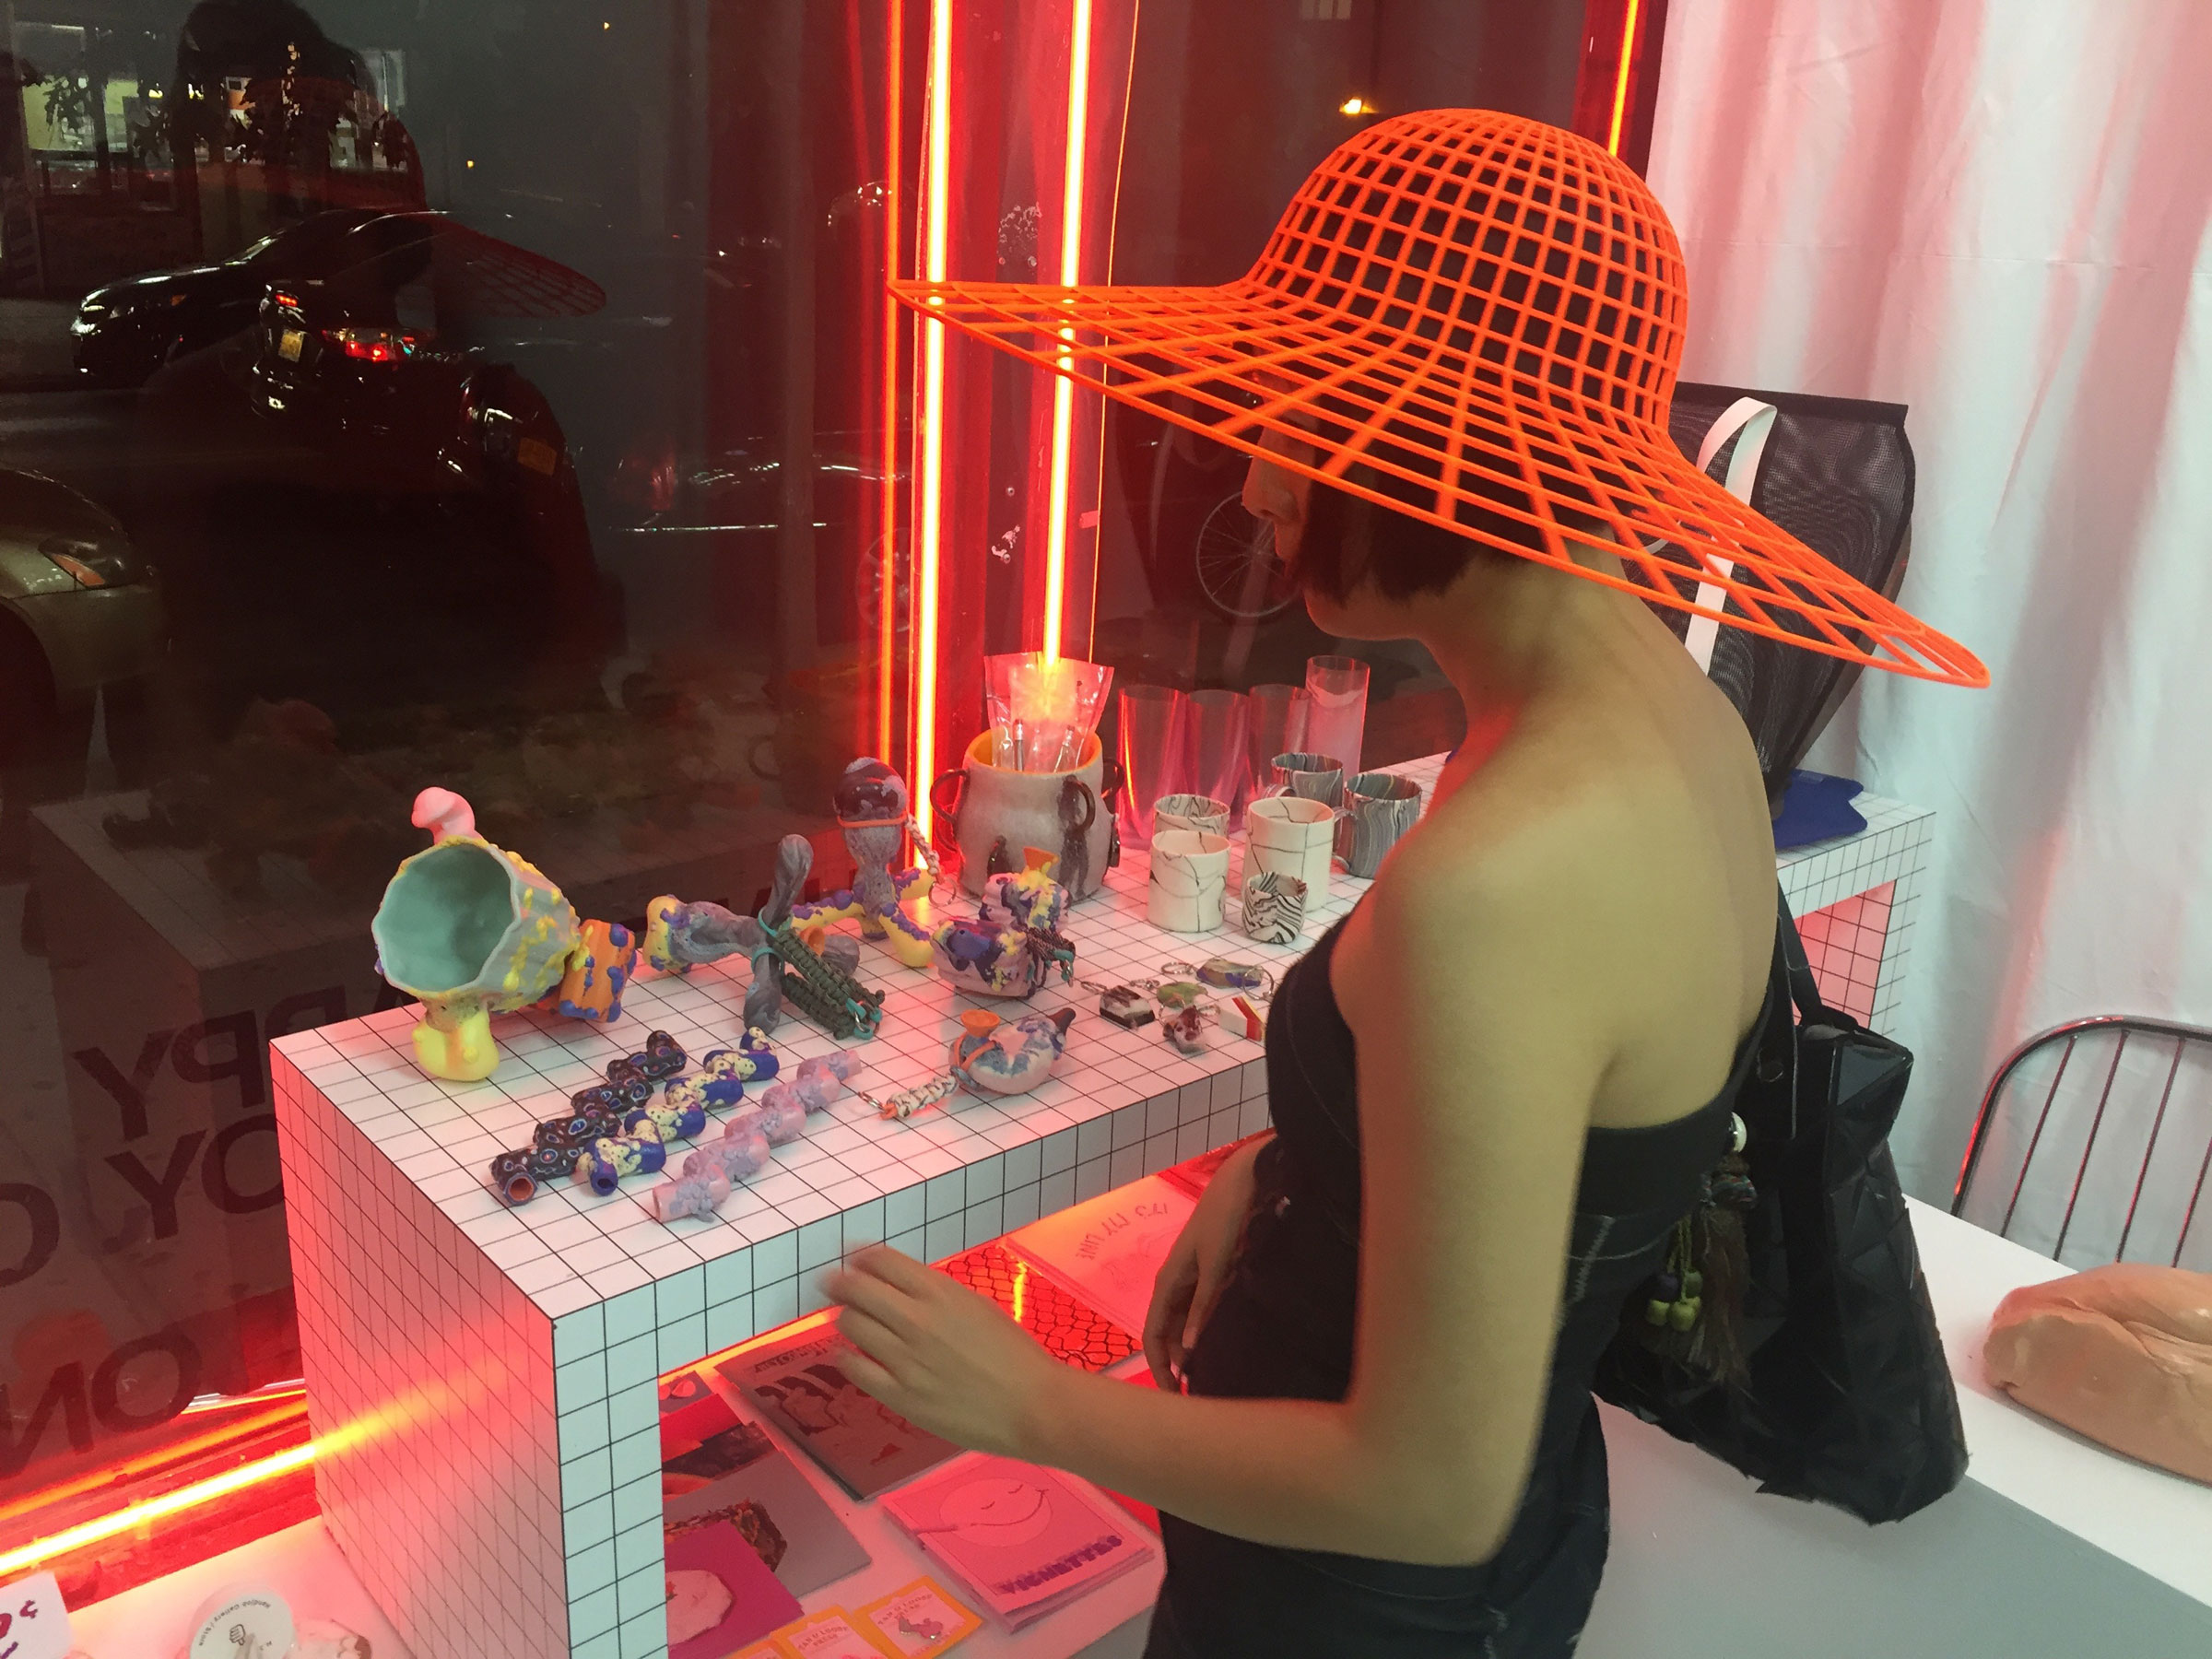 We attended the opening with hat designer Heidi Lee, pictured here with one of her creations